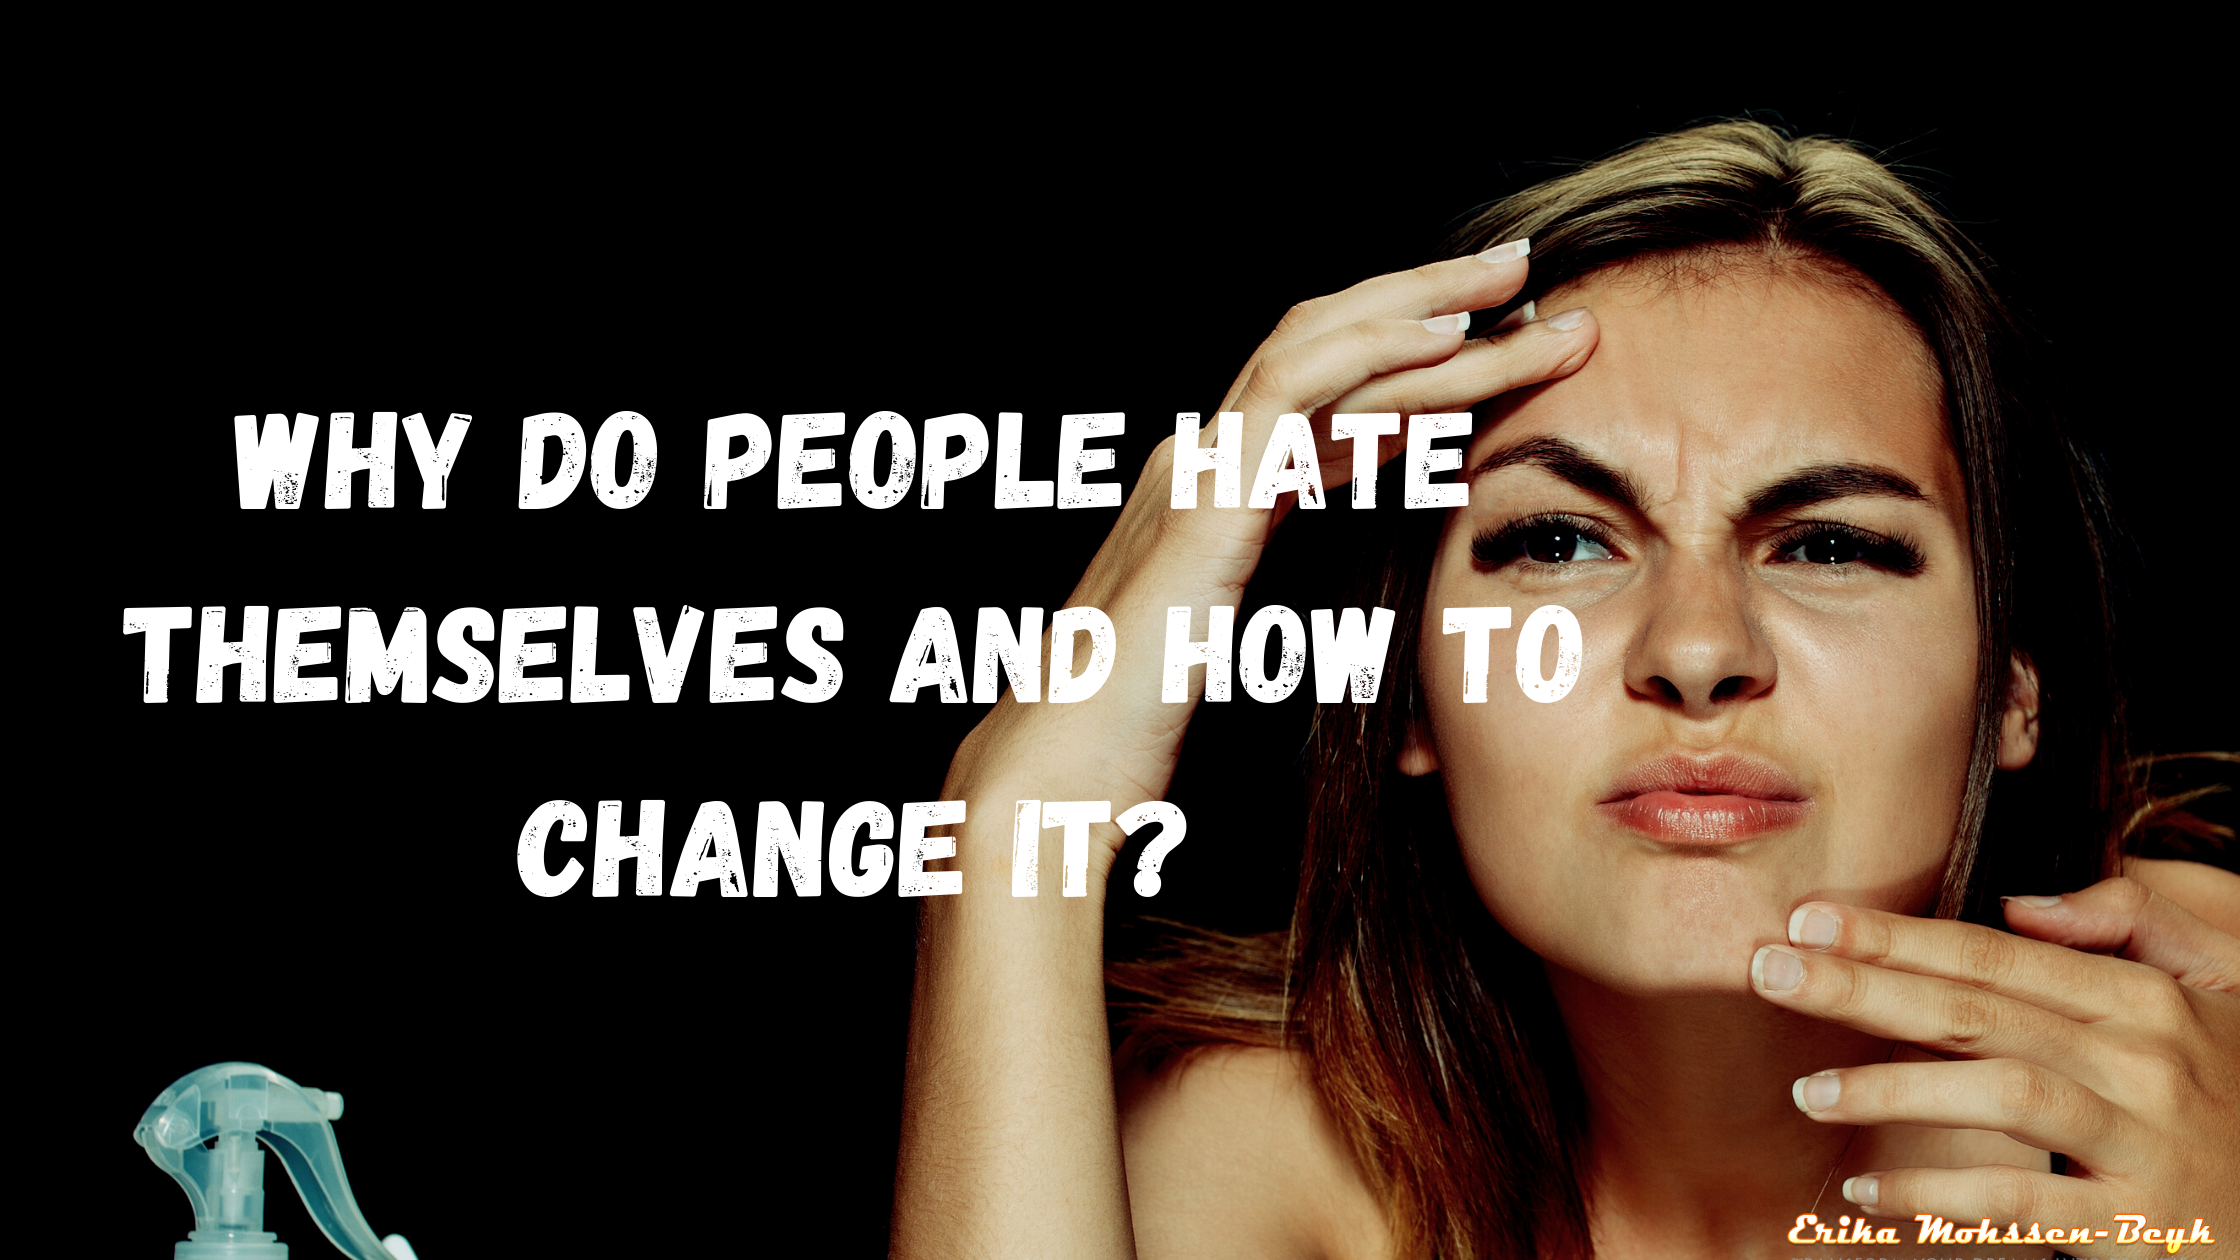 self-hatred Do People Hate Themselves And How To Change It?